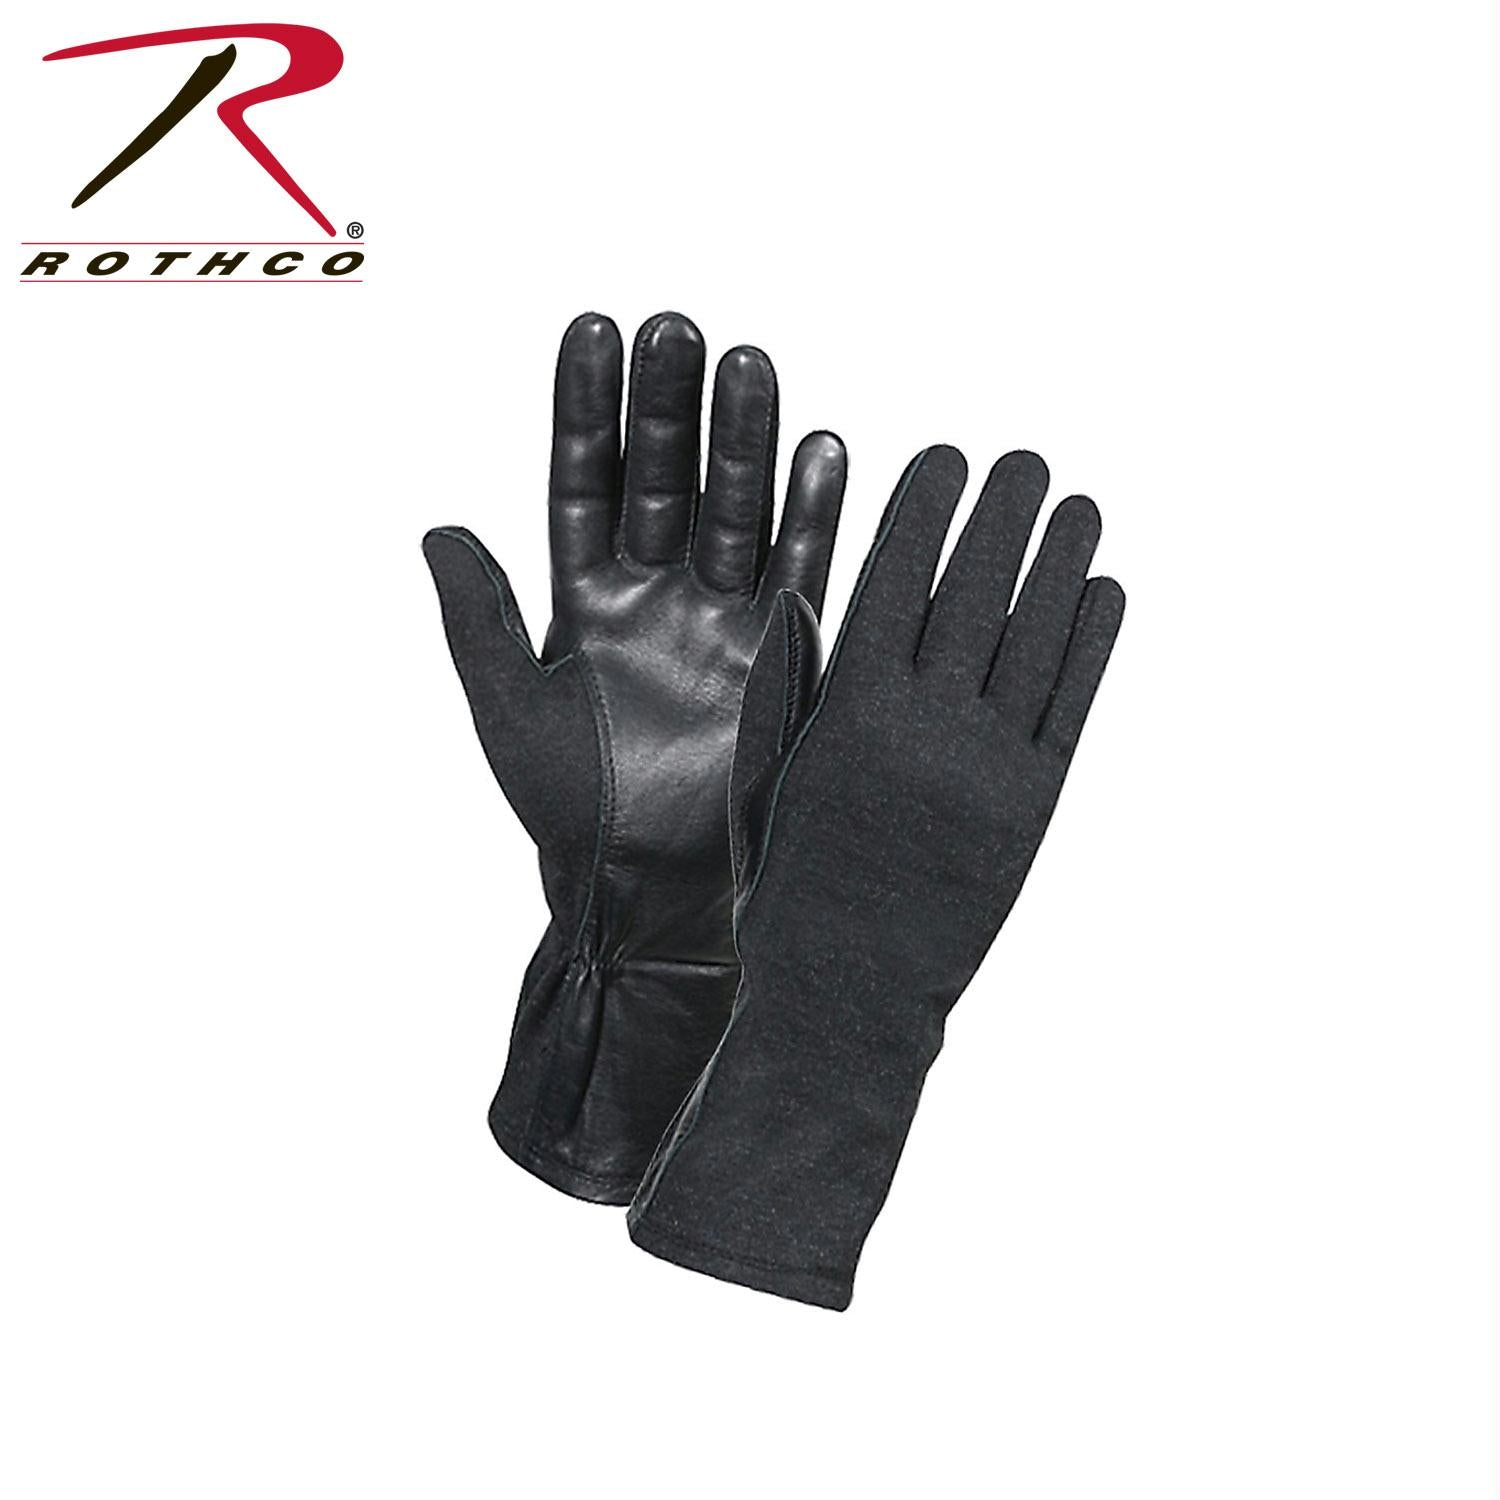 Rothco G.I. Type Flame & Heat Resistant Flight Gloves - Black / 7